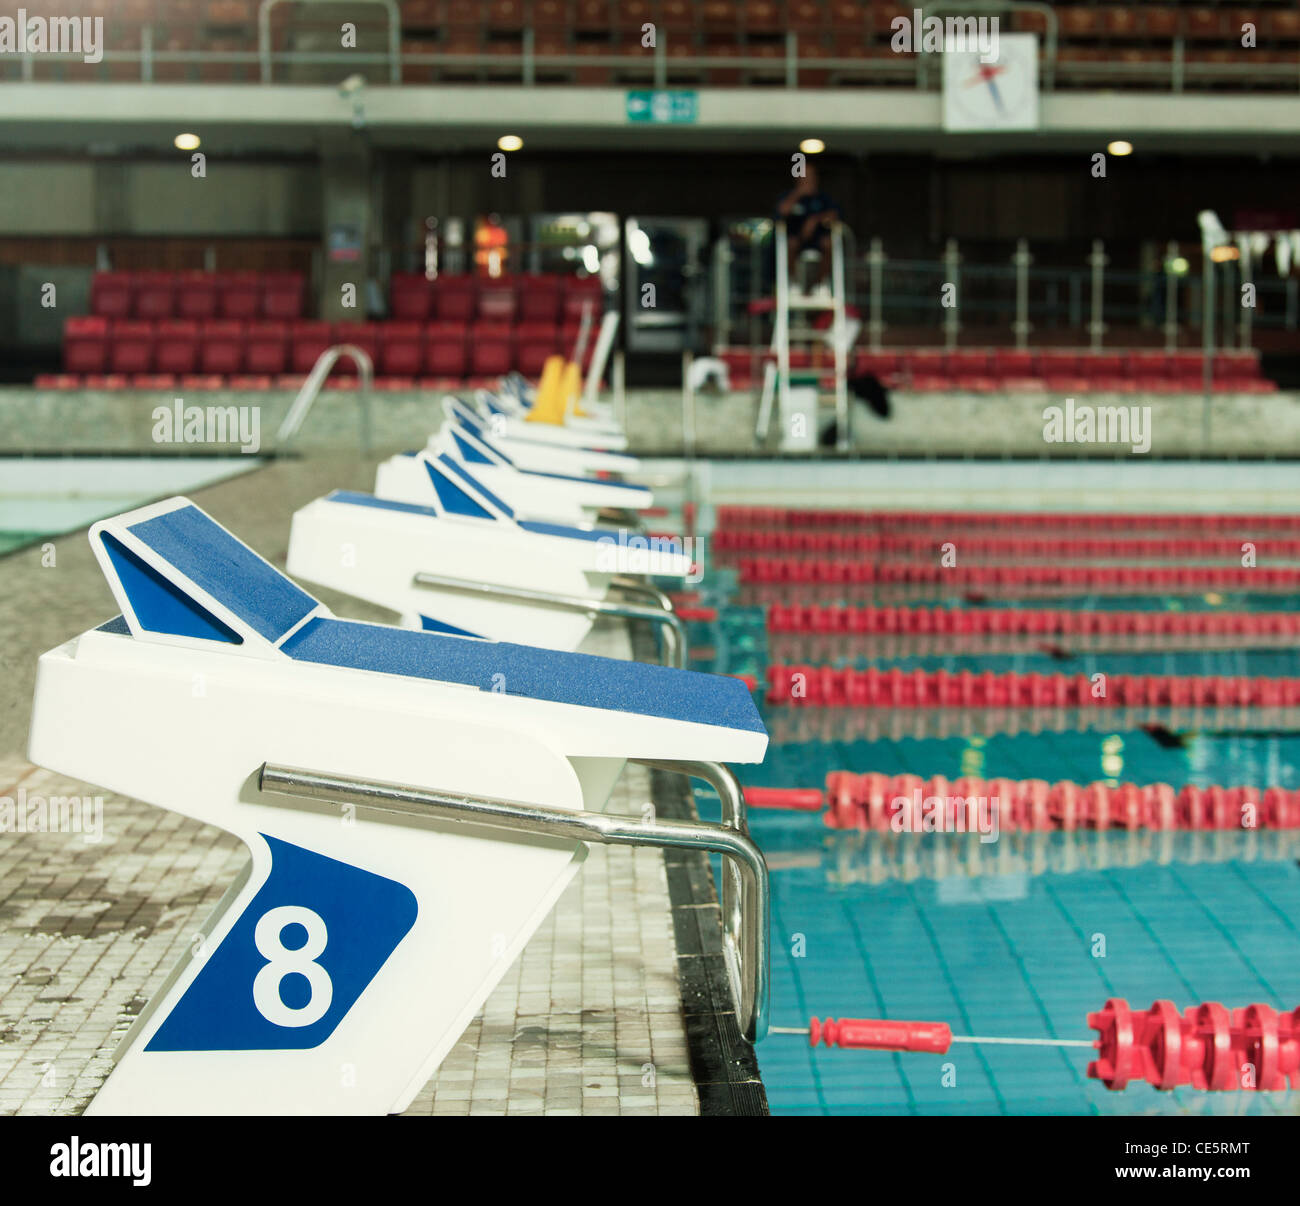 olympic swimming pool starting blocks - Olympic Swimming Starting Blocks